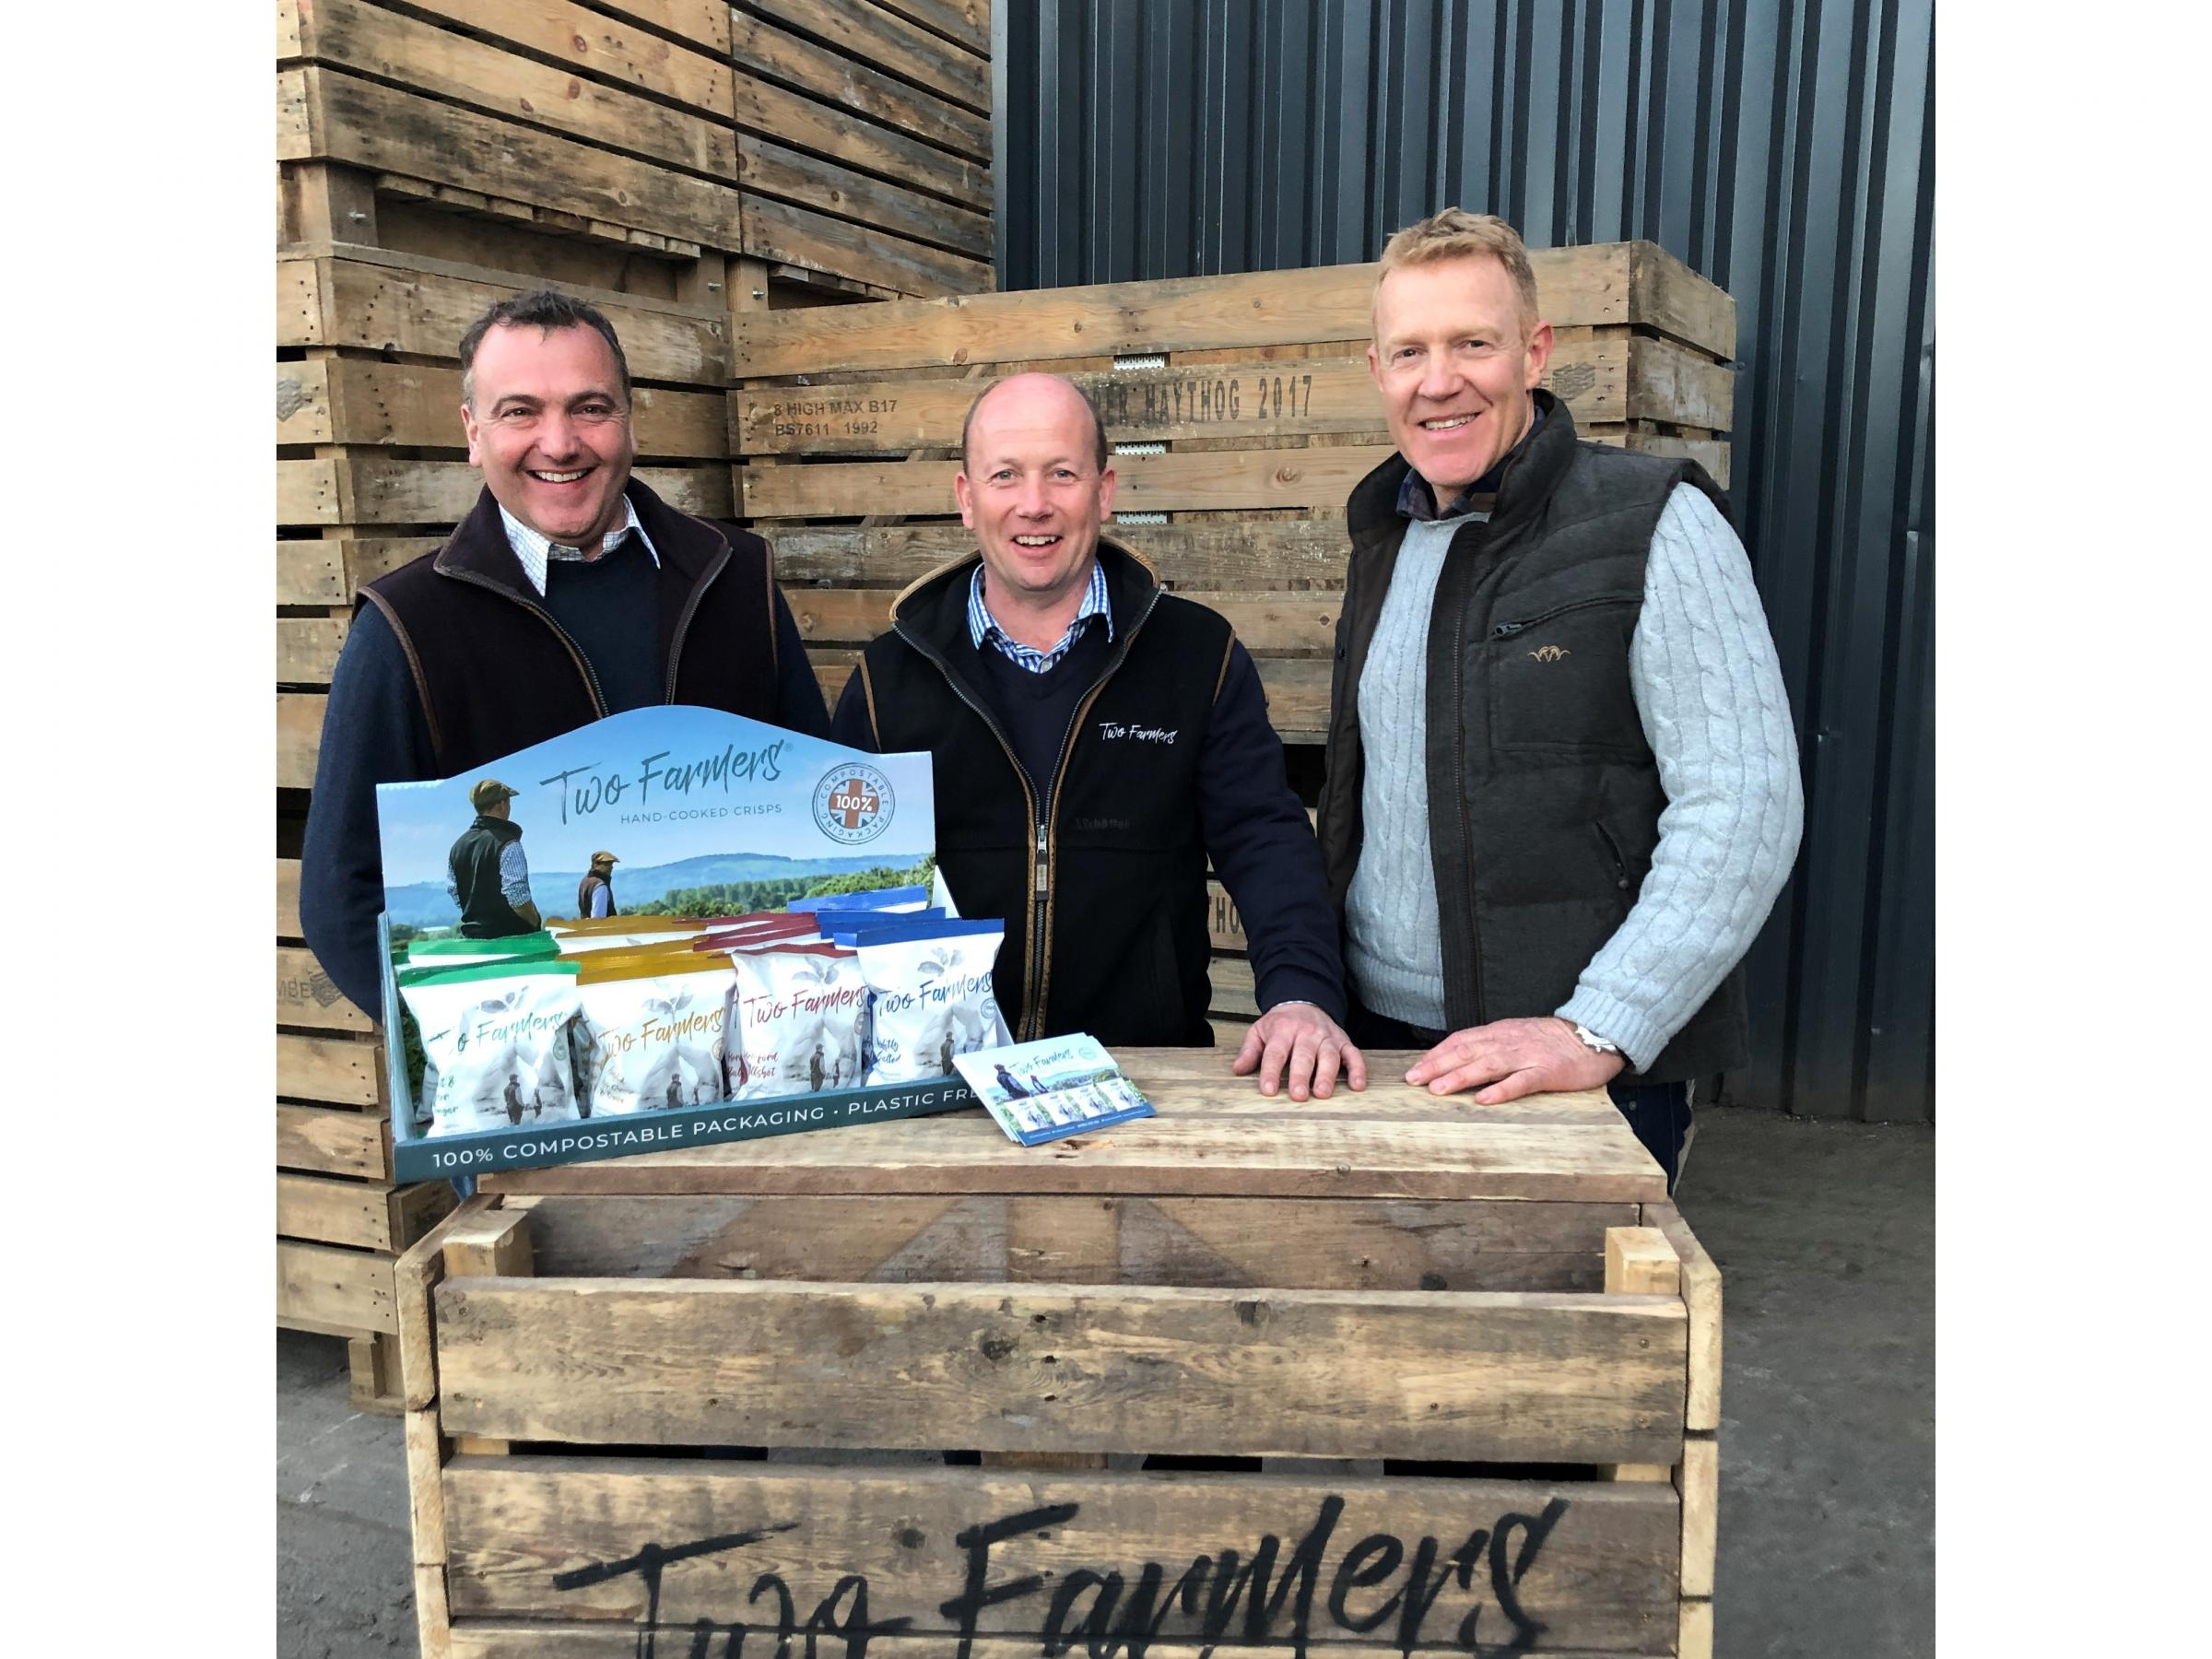 Sean Mason and Mark Green played host to the Countryfile team.